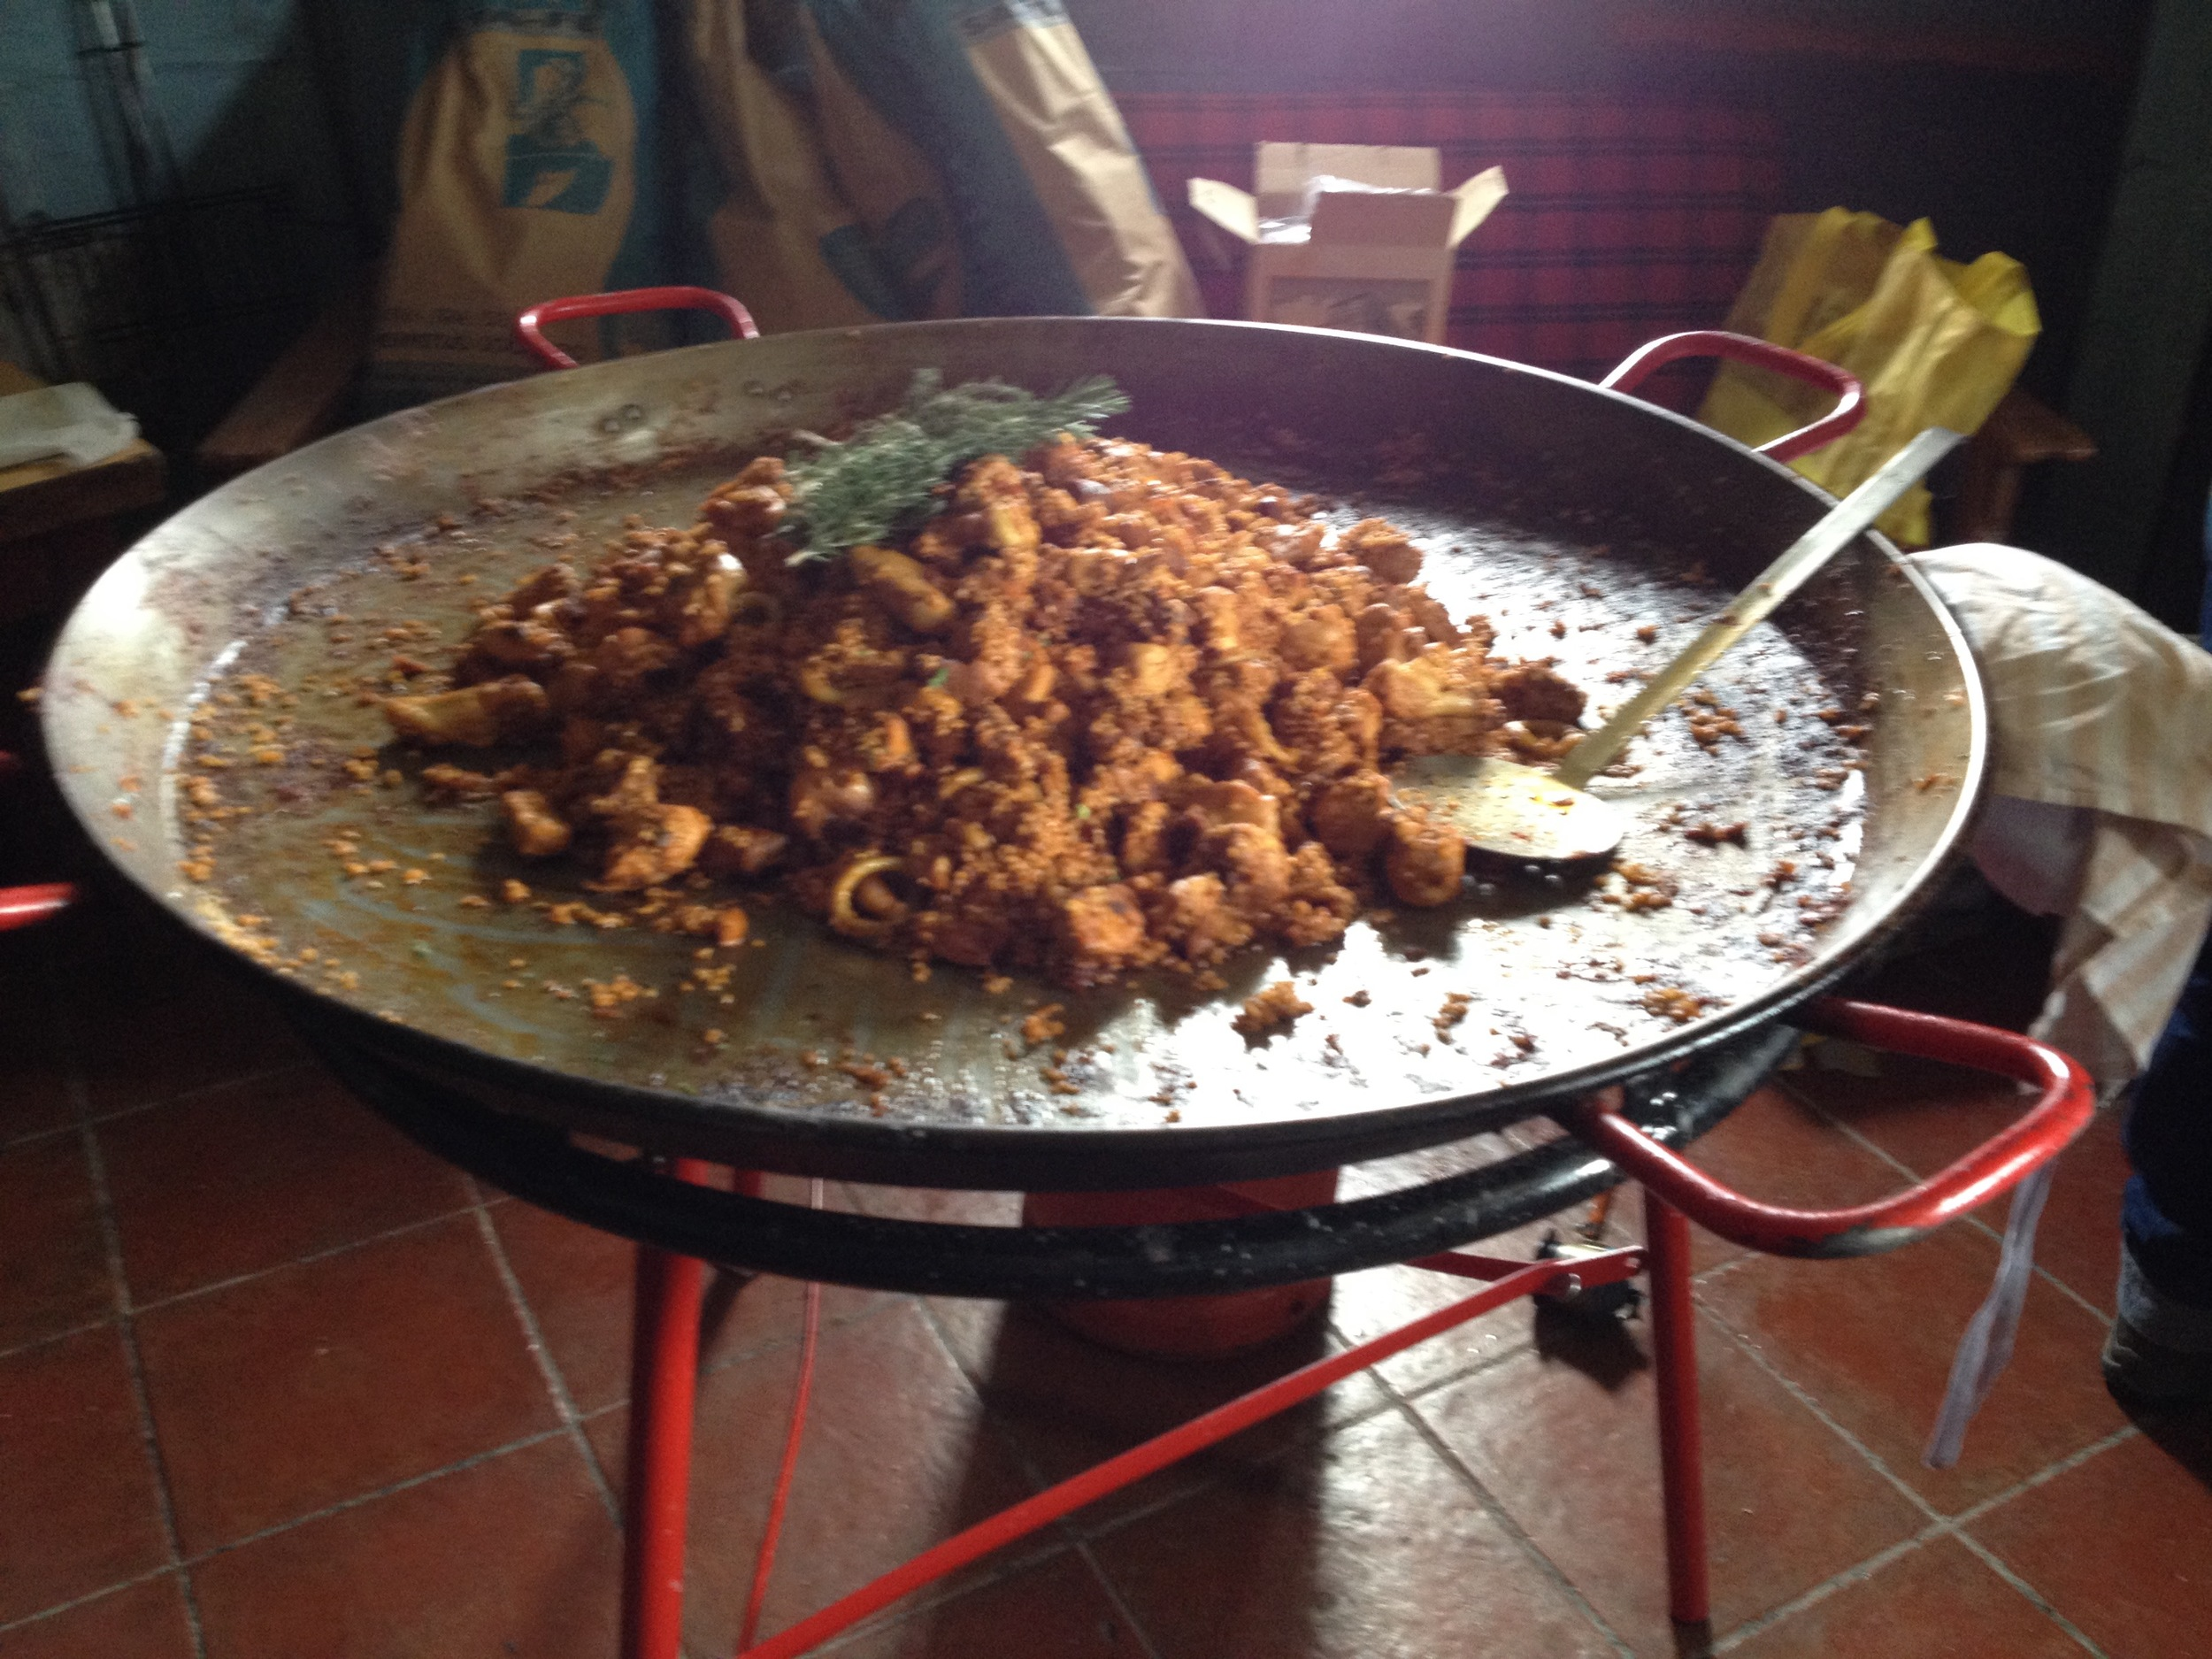 A giant dish of  paella  - what Spaniards call a  paellaca  (a BIG paella) - cooked in a hiker's hut atop the Sierra Nevada mountains.